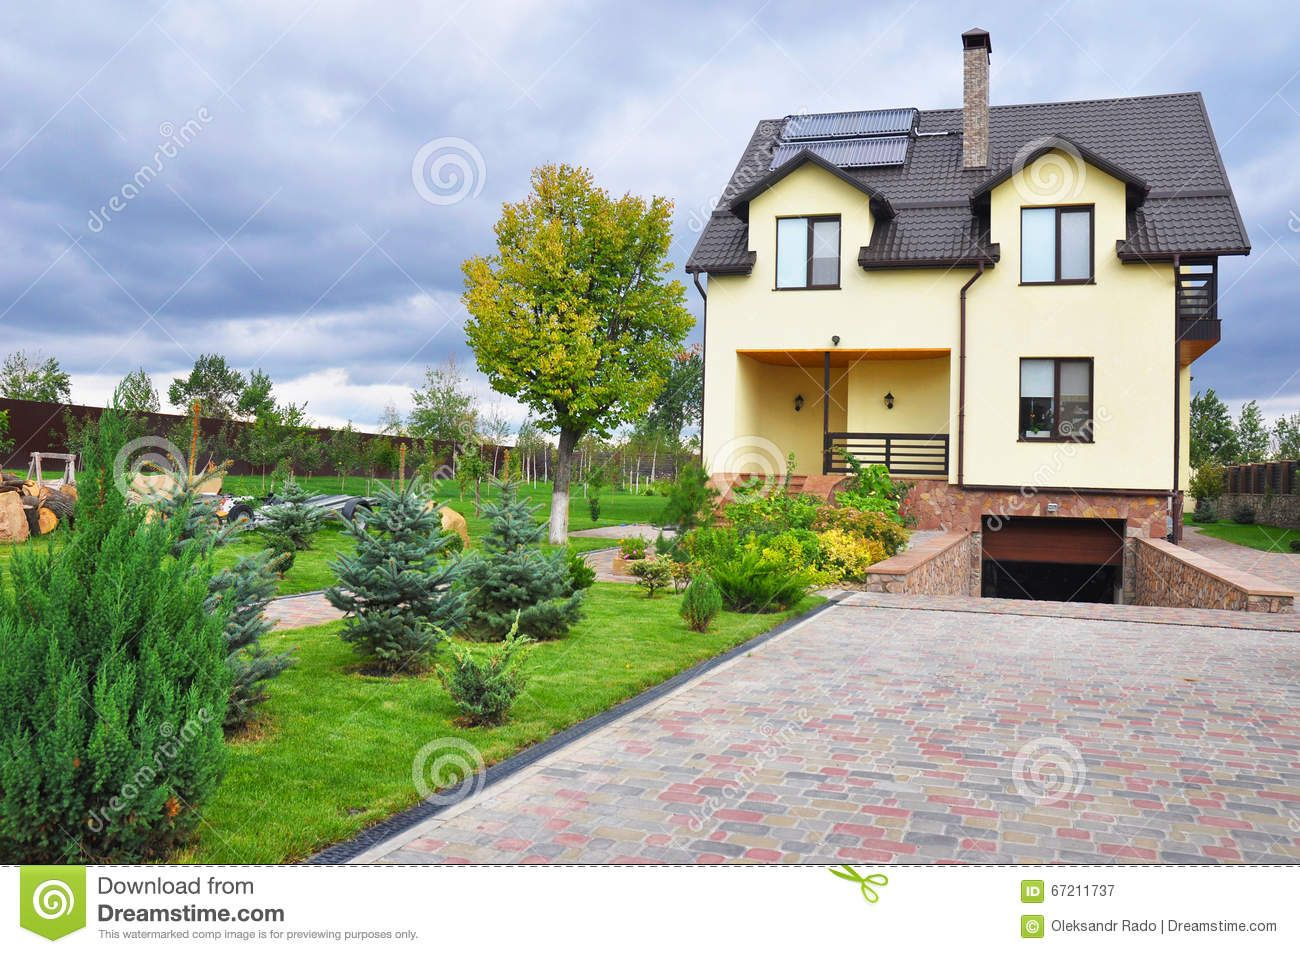 Energy Efficiency New Passive House Building Concept Exterior Cozy House With Solar Water Panel Heating Dormers Solar Panels Stock Photo Image 67211737